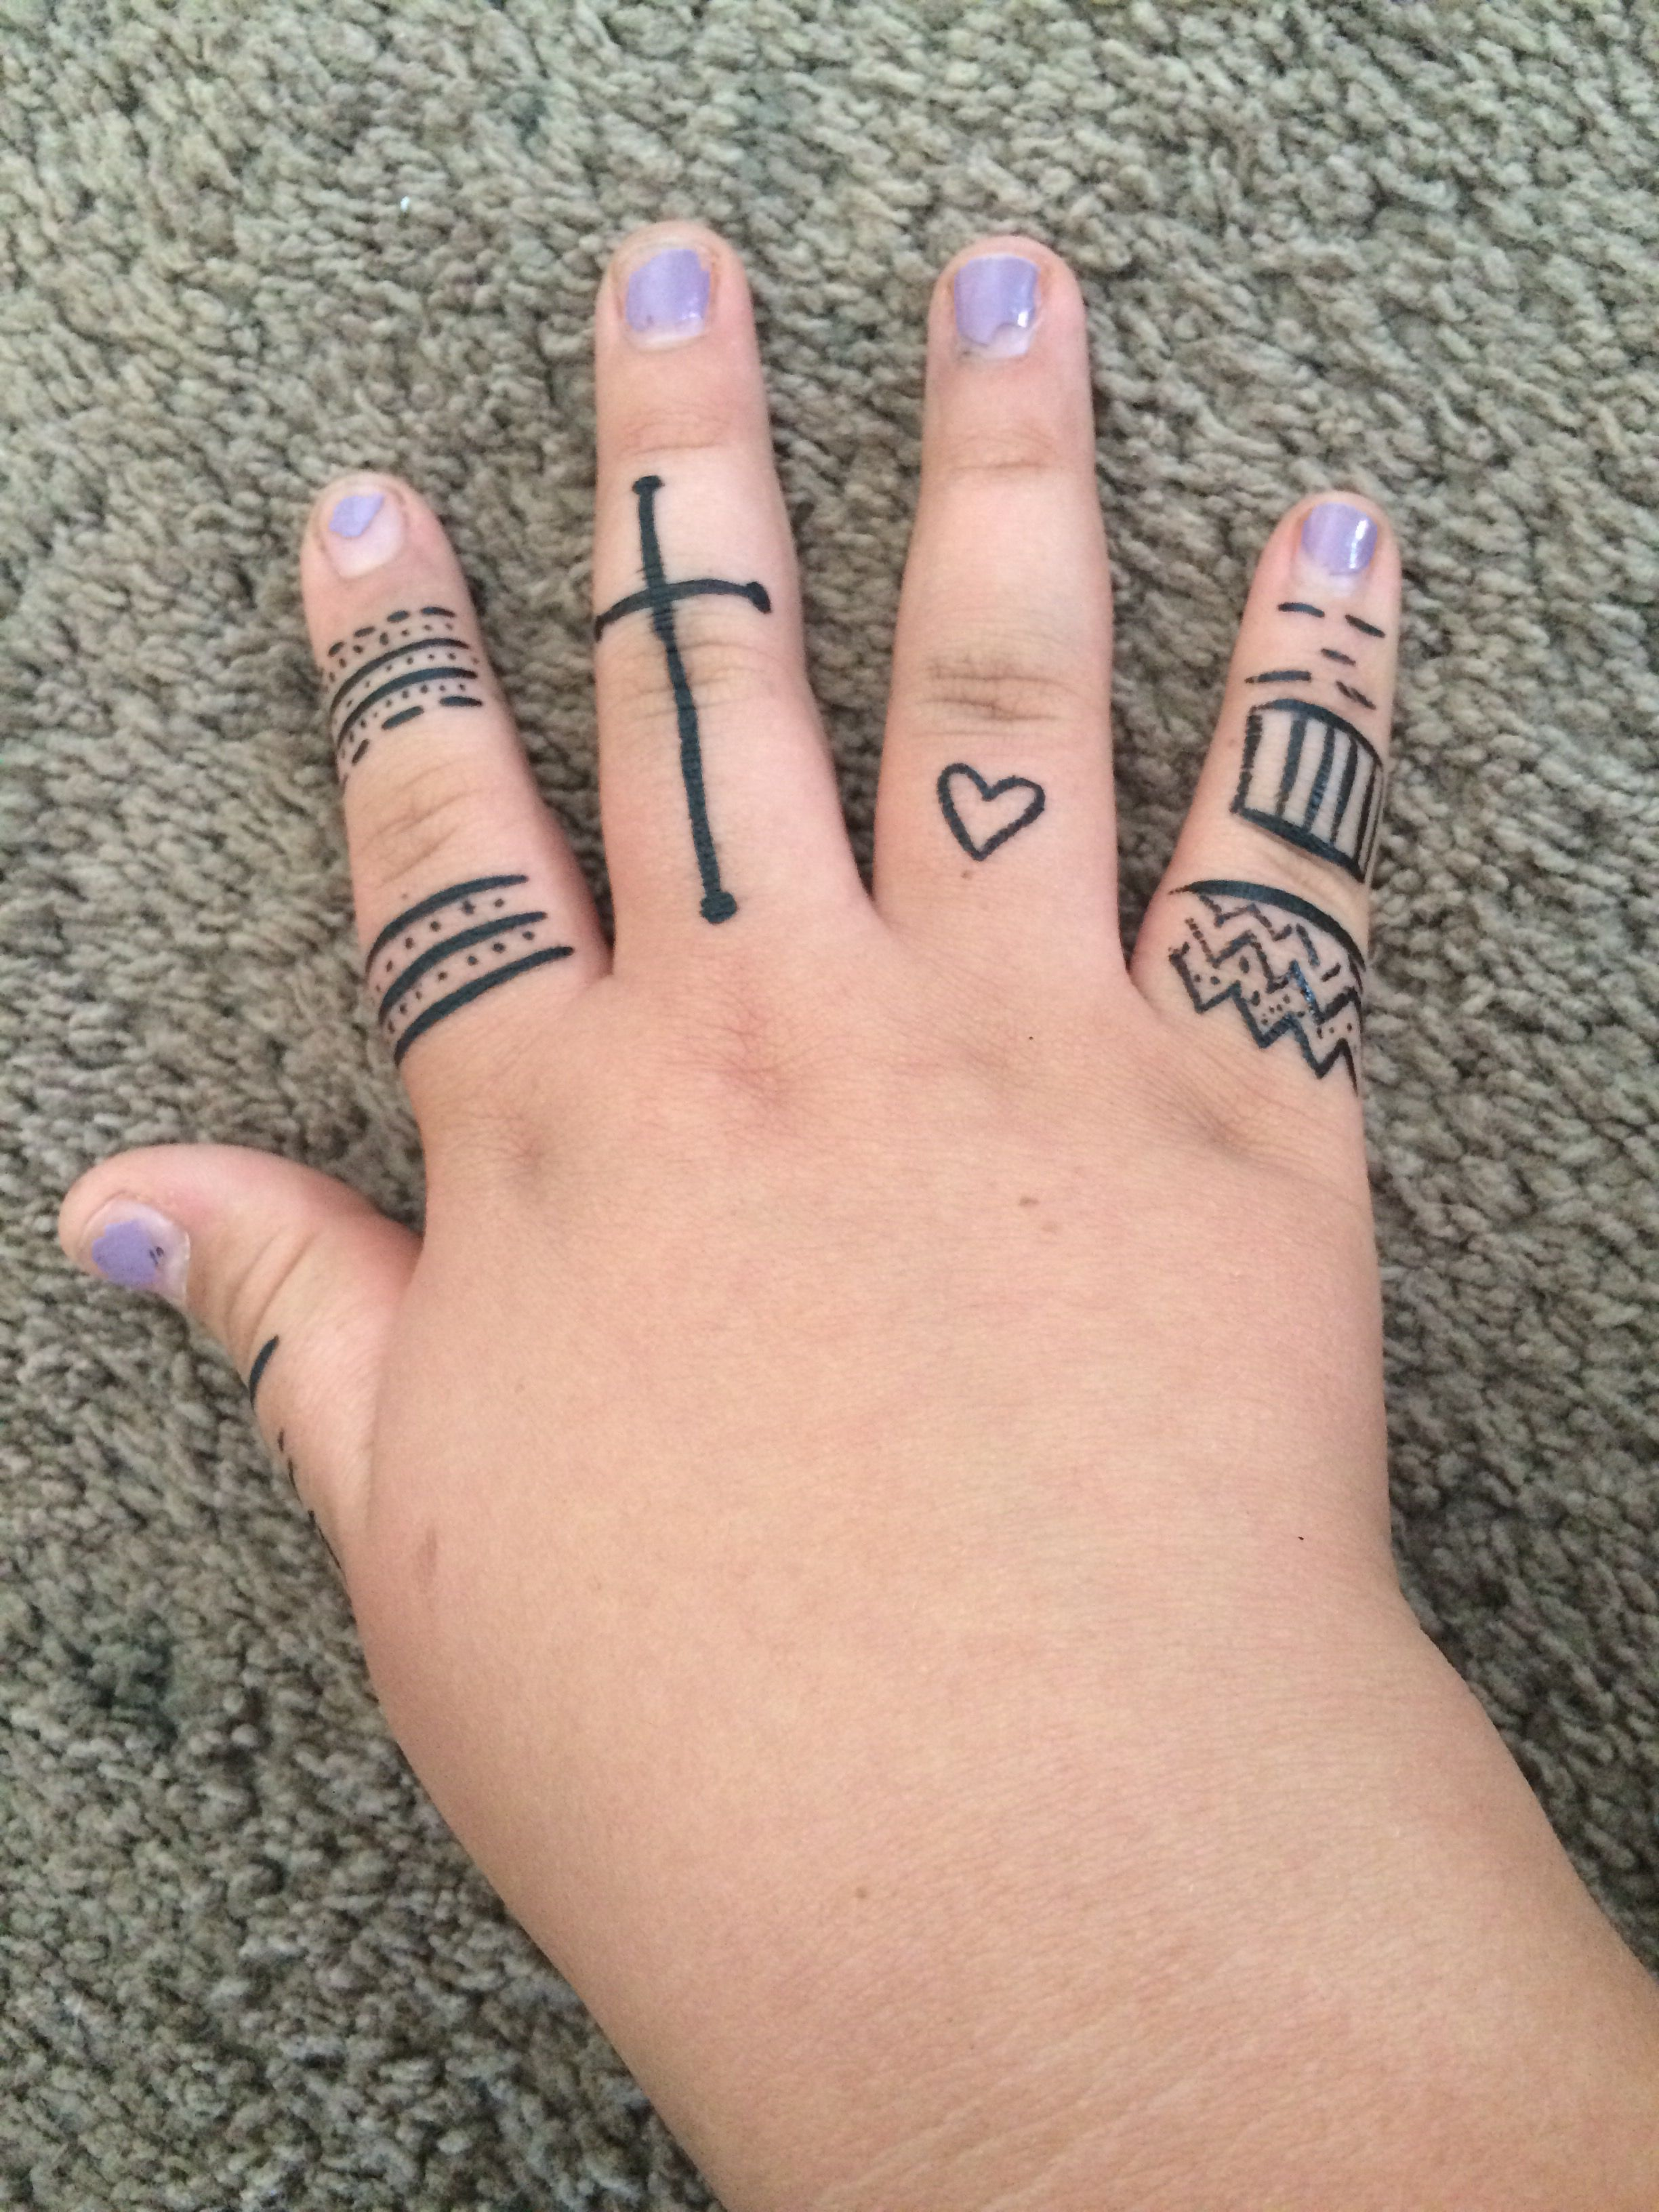 Diy temporary tattoo. All you meed is liquid eyeliner and